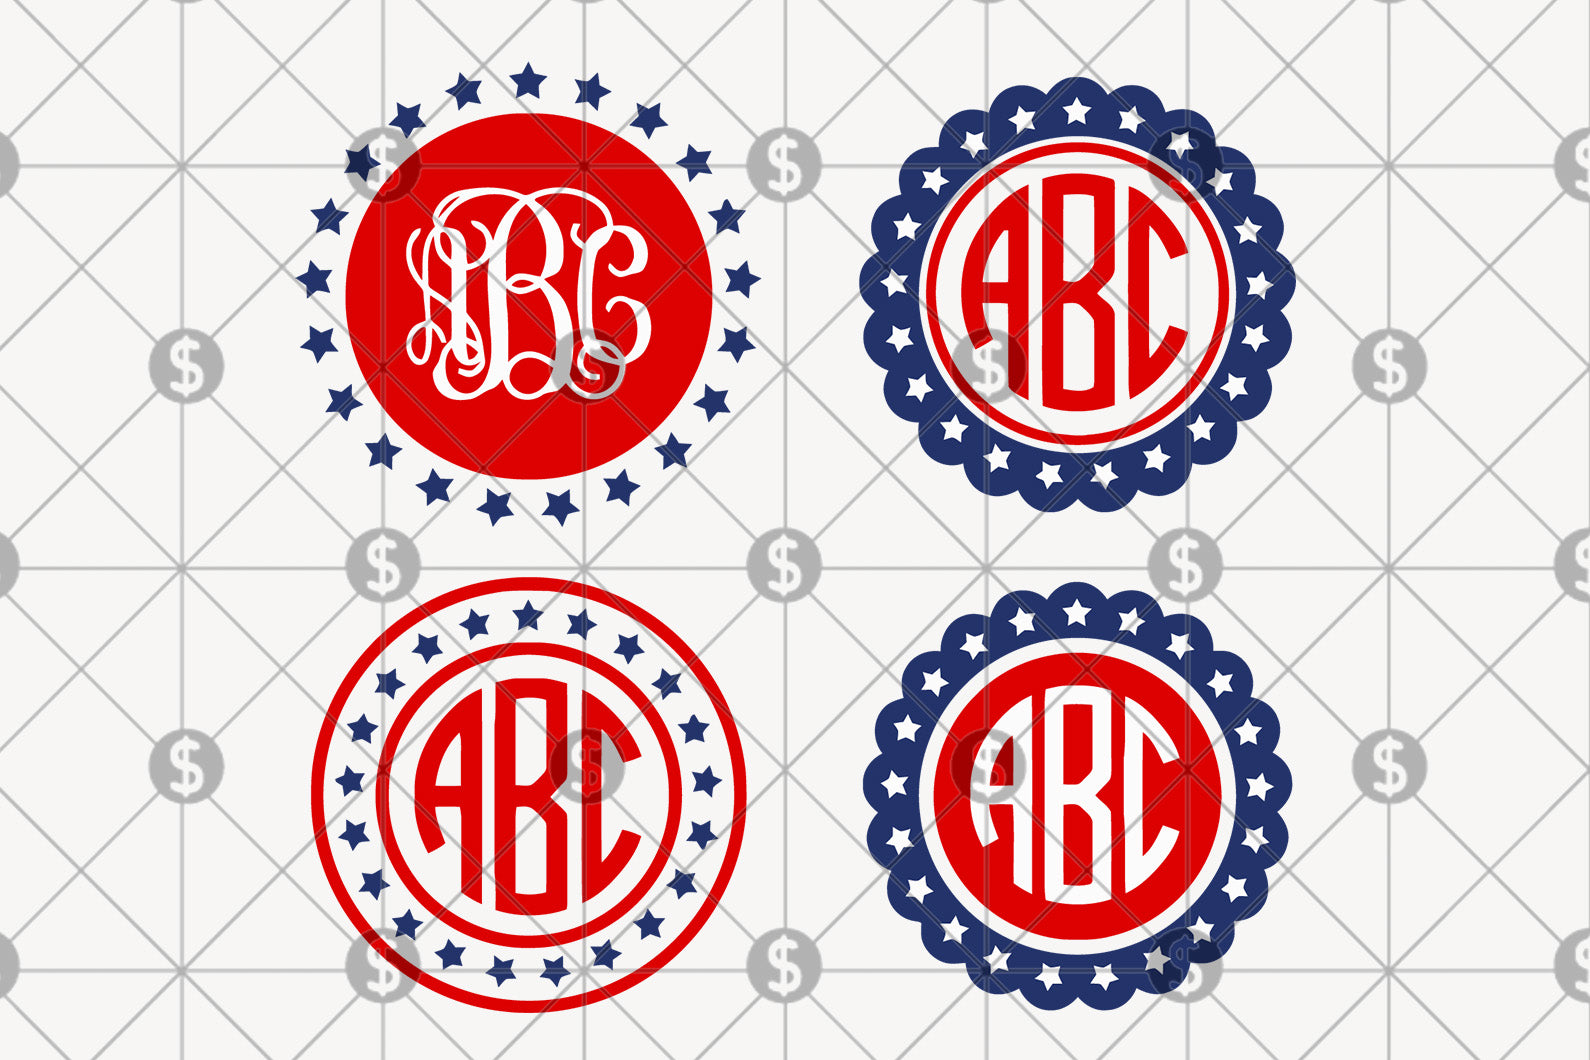 Fourth of july svg, america flag bundle, america flag svg, us flag svg, usa flag, united states flag, distressed flag svg,america flag bundle,flag svg bundle, usa flag svg, us flag, flag svg, american flag png, vintage svg, usa flag cut file